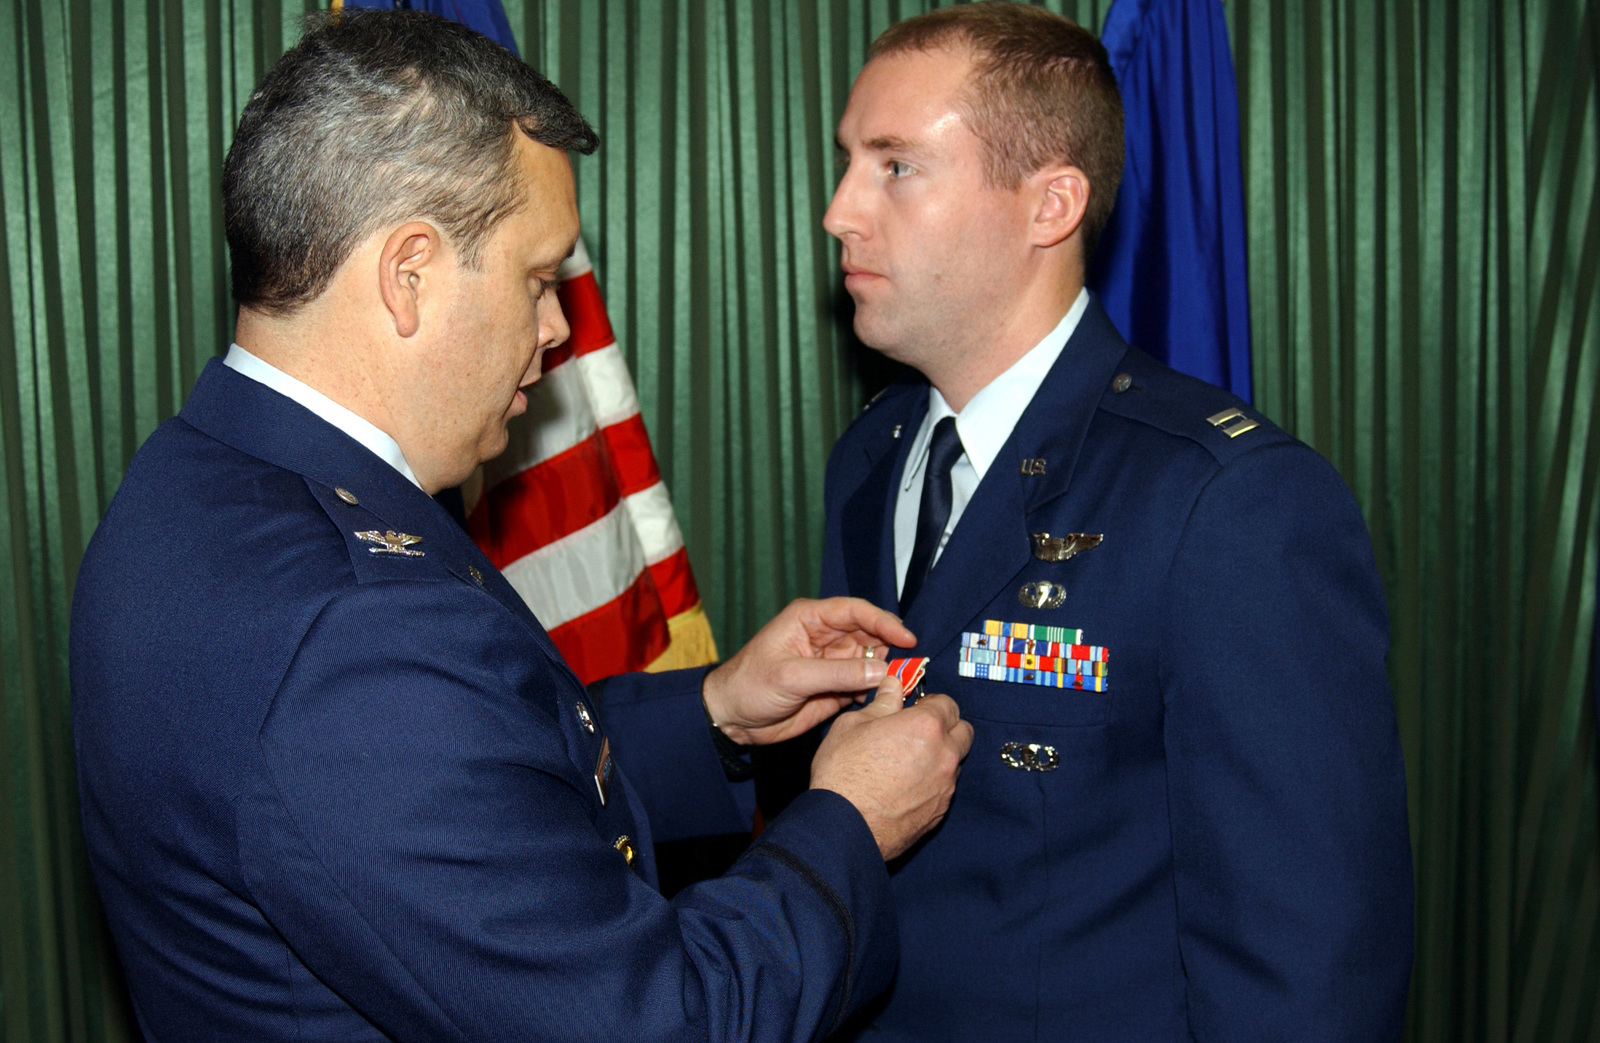 US Air Force (USAF) Colonel (COL) Michael A Longoria (left), Commander, 18th Air Support Operations Group (ASOG), Pope Air Force Base (AFB), North Carolina (NC), pins the Bronze Star on USAF Captain (CAPT) David A Ferguson, 17th Air Support Operations Squadron (ASOS), Hunter Army Airfield (AAF), Georgia (GA). They awards ceremony was held at the Hunter Club on the base